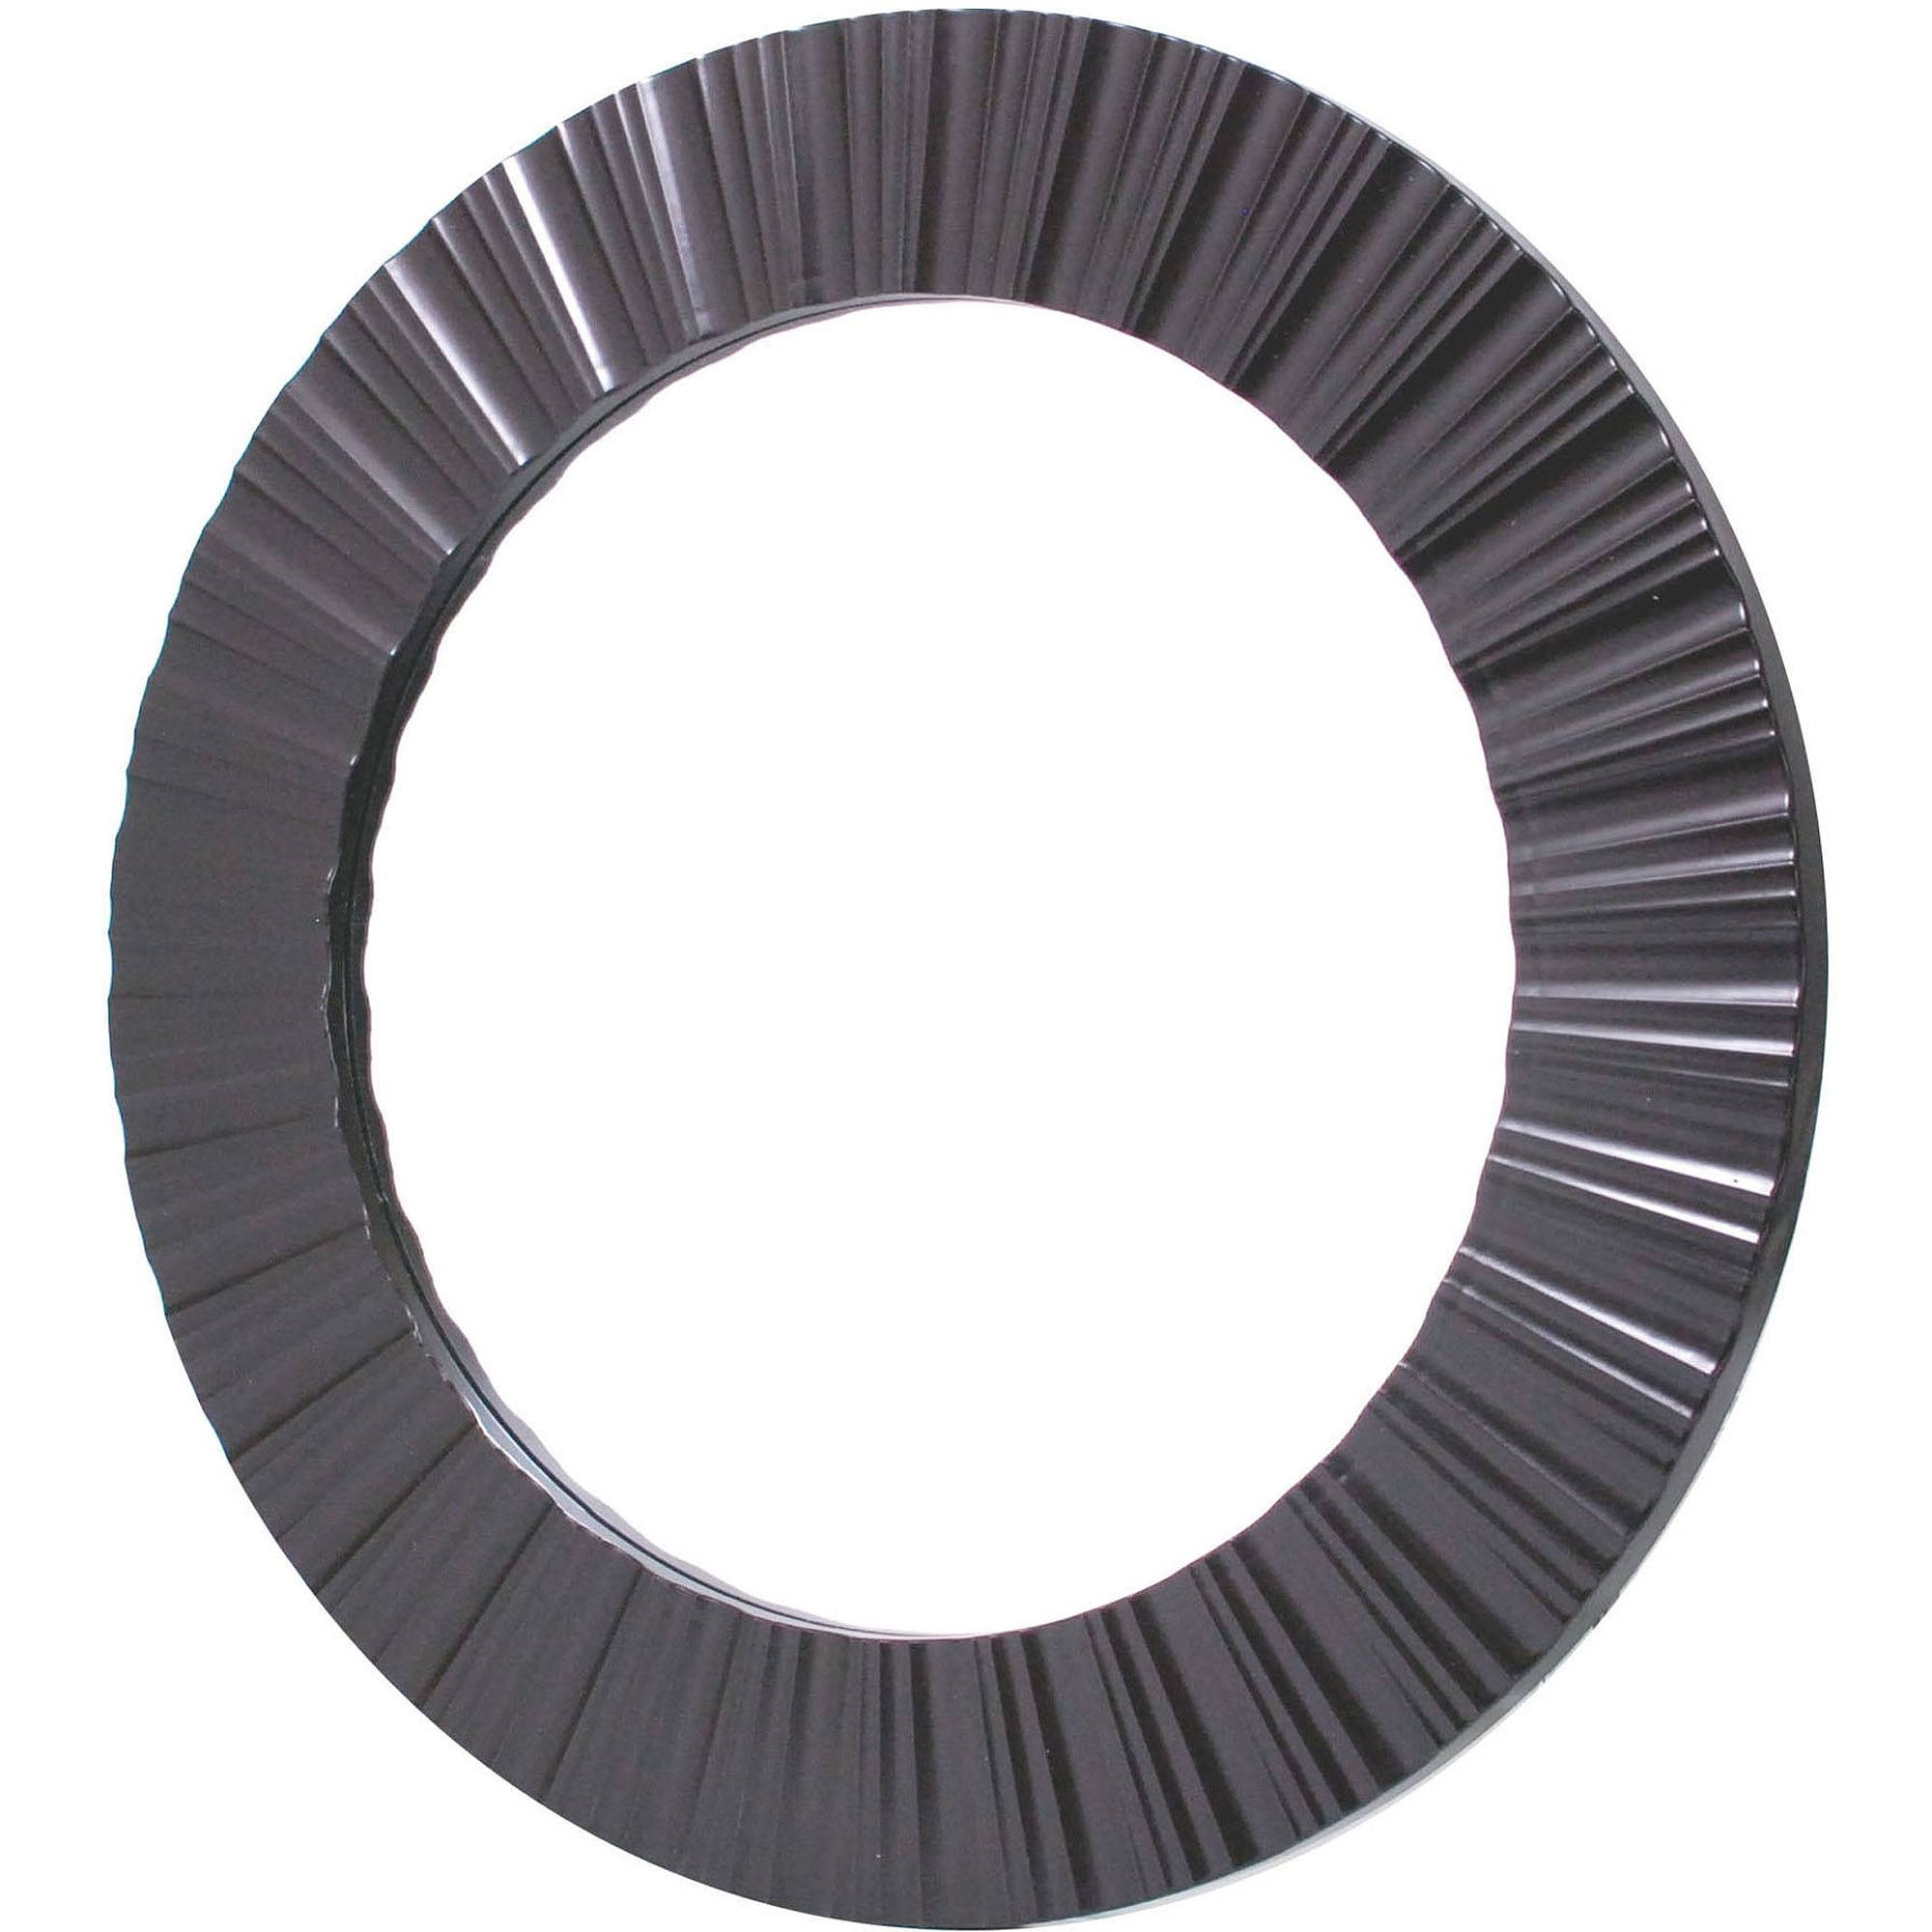 Large Round Mirrors Pertaining To Large Circle Mirrors (View 18 of 25)